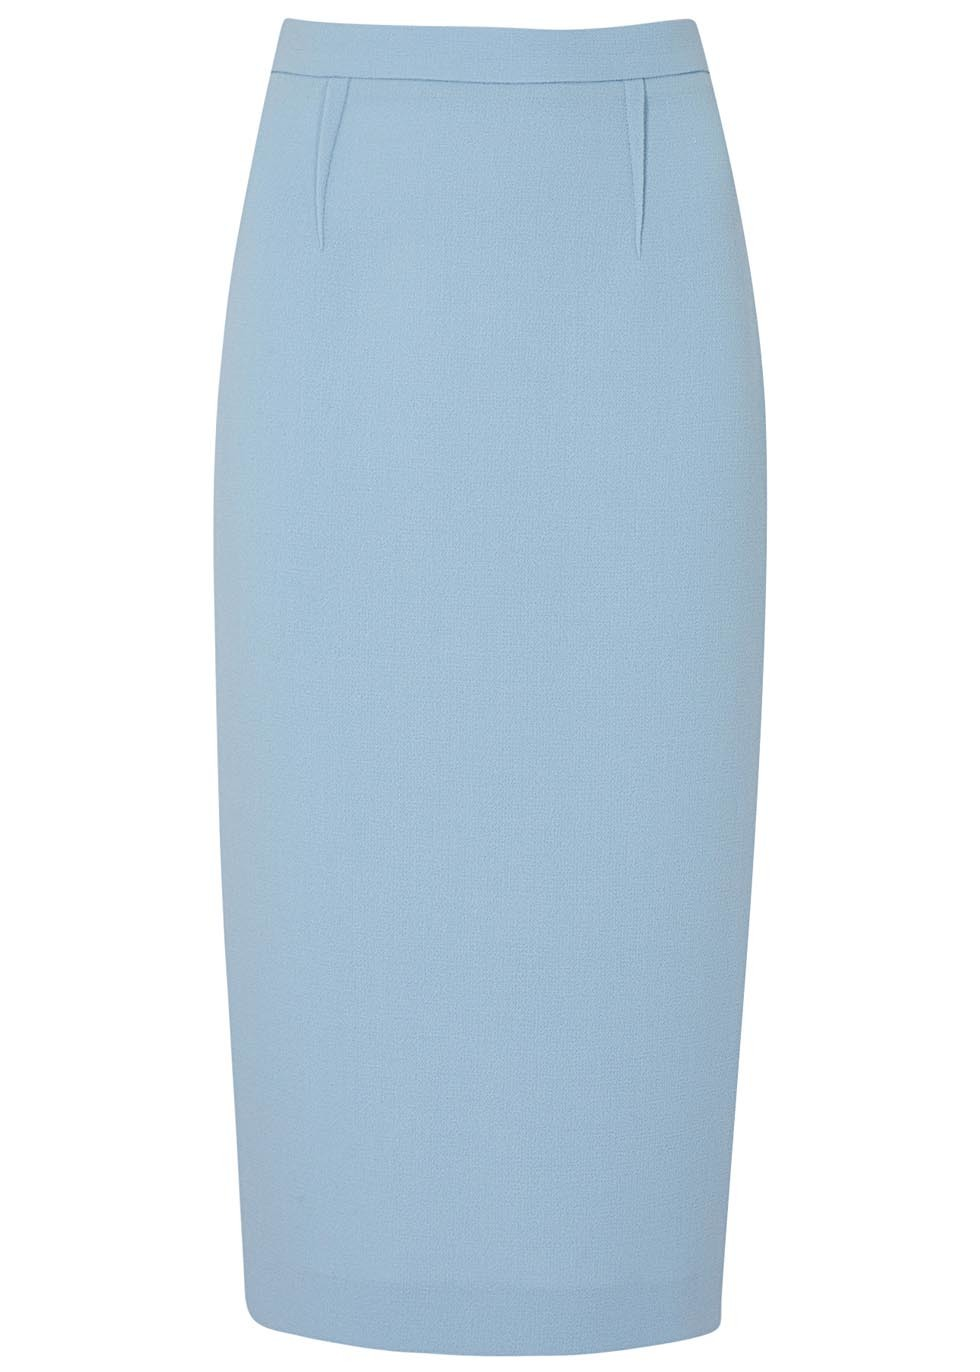 Arreton Blue Wool Crepe Pencil Skirt - pattern: plain; style: pencil; fit: tailored/fitted; waist: mid/regular rise; predominant colour: pale blue; occasions: evening; length: on the knee; fibres: wool - mix; texture group: crepes; pattern type: fabric; season: s/s 2016; wardrobe: event